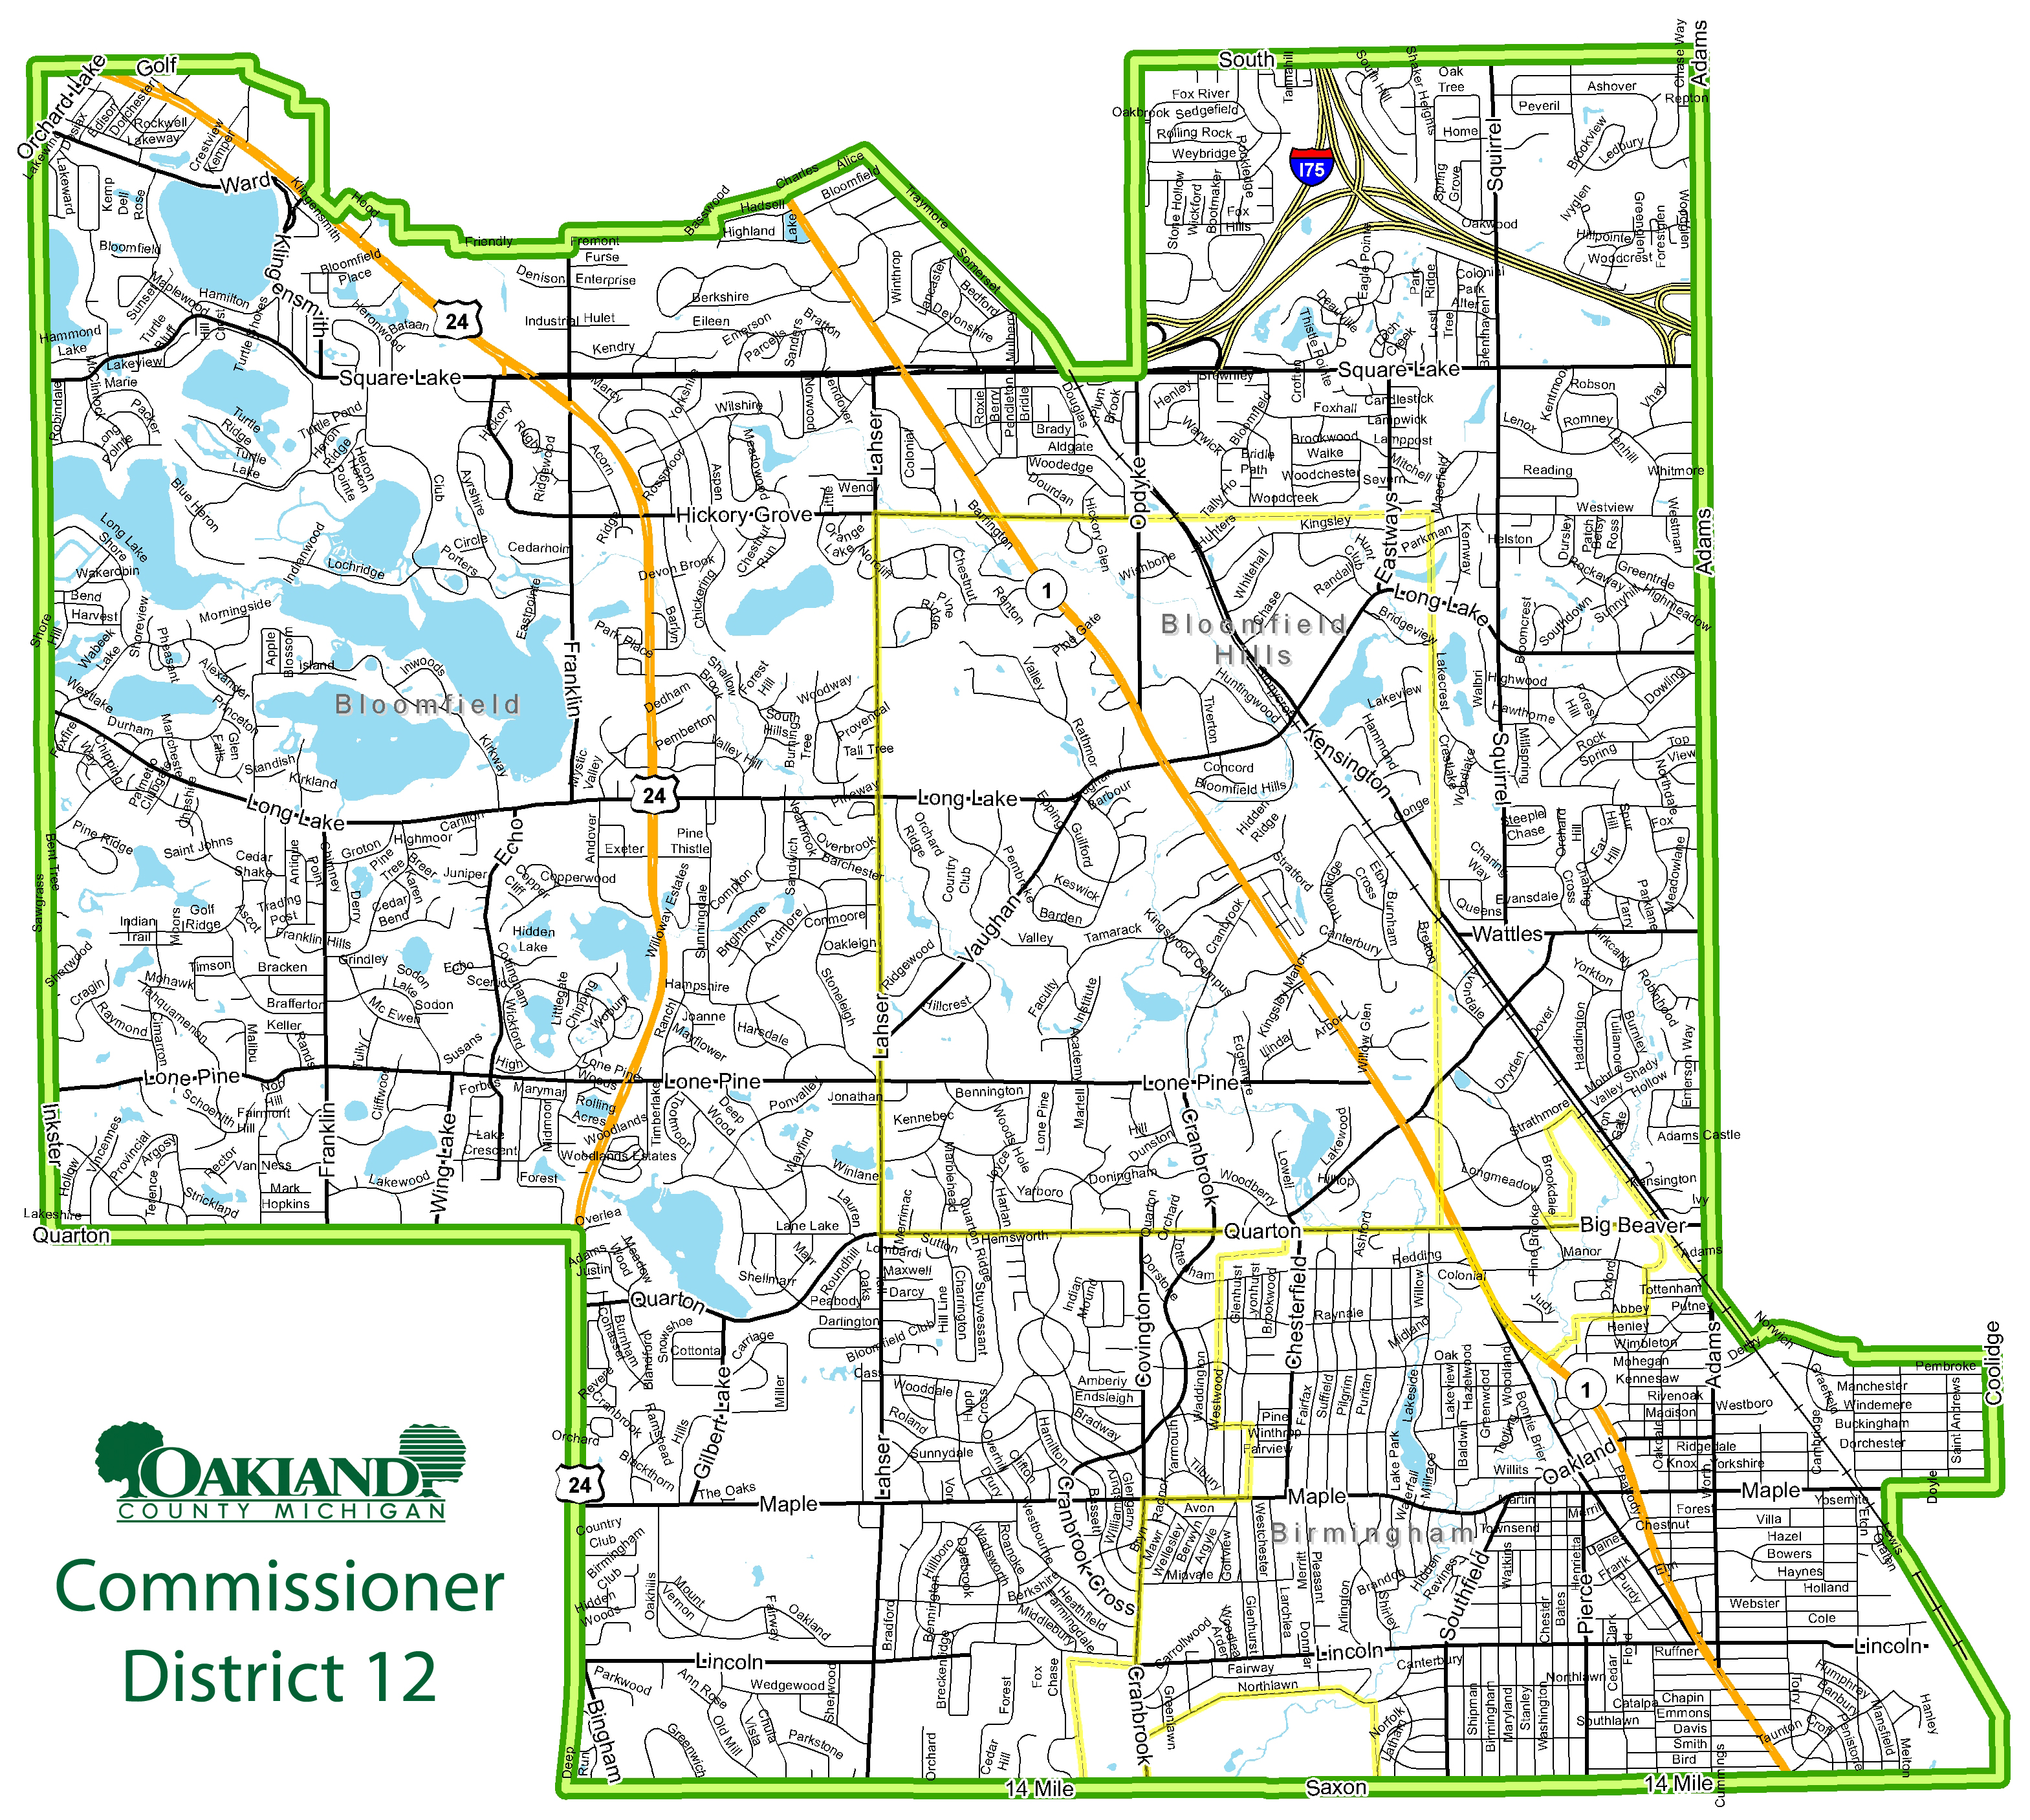 Street map of Commissioner District 12